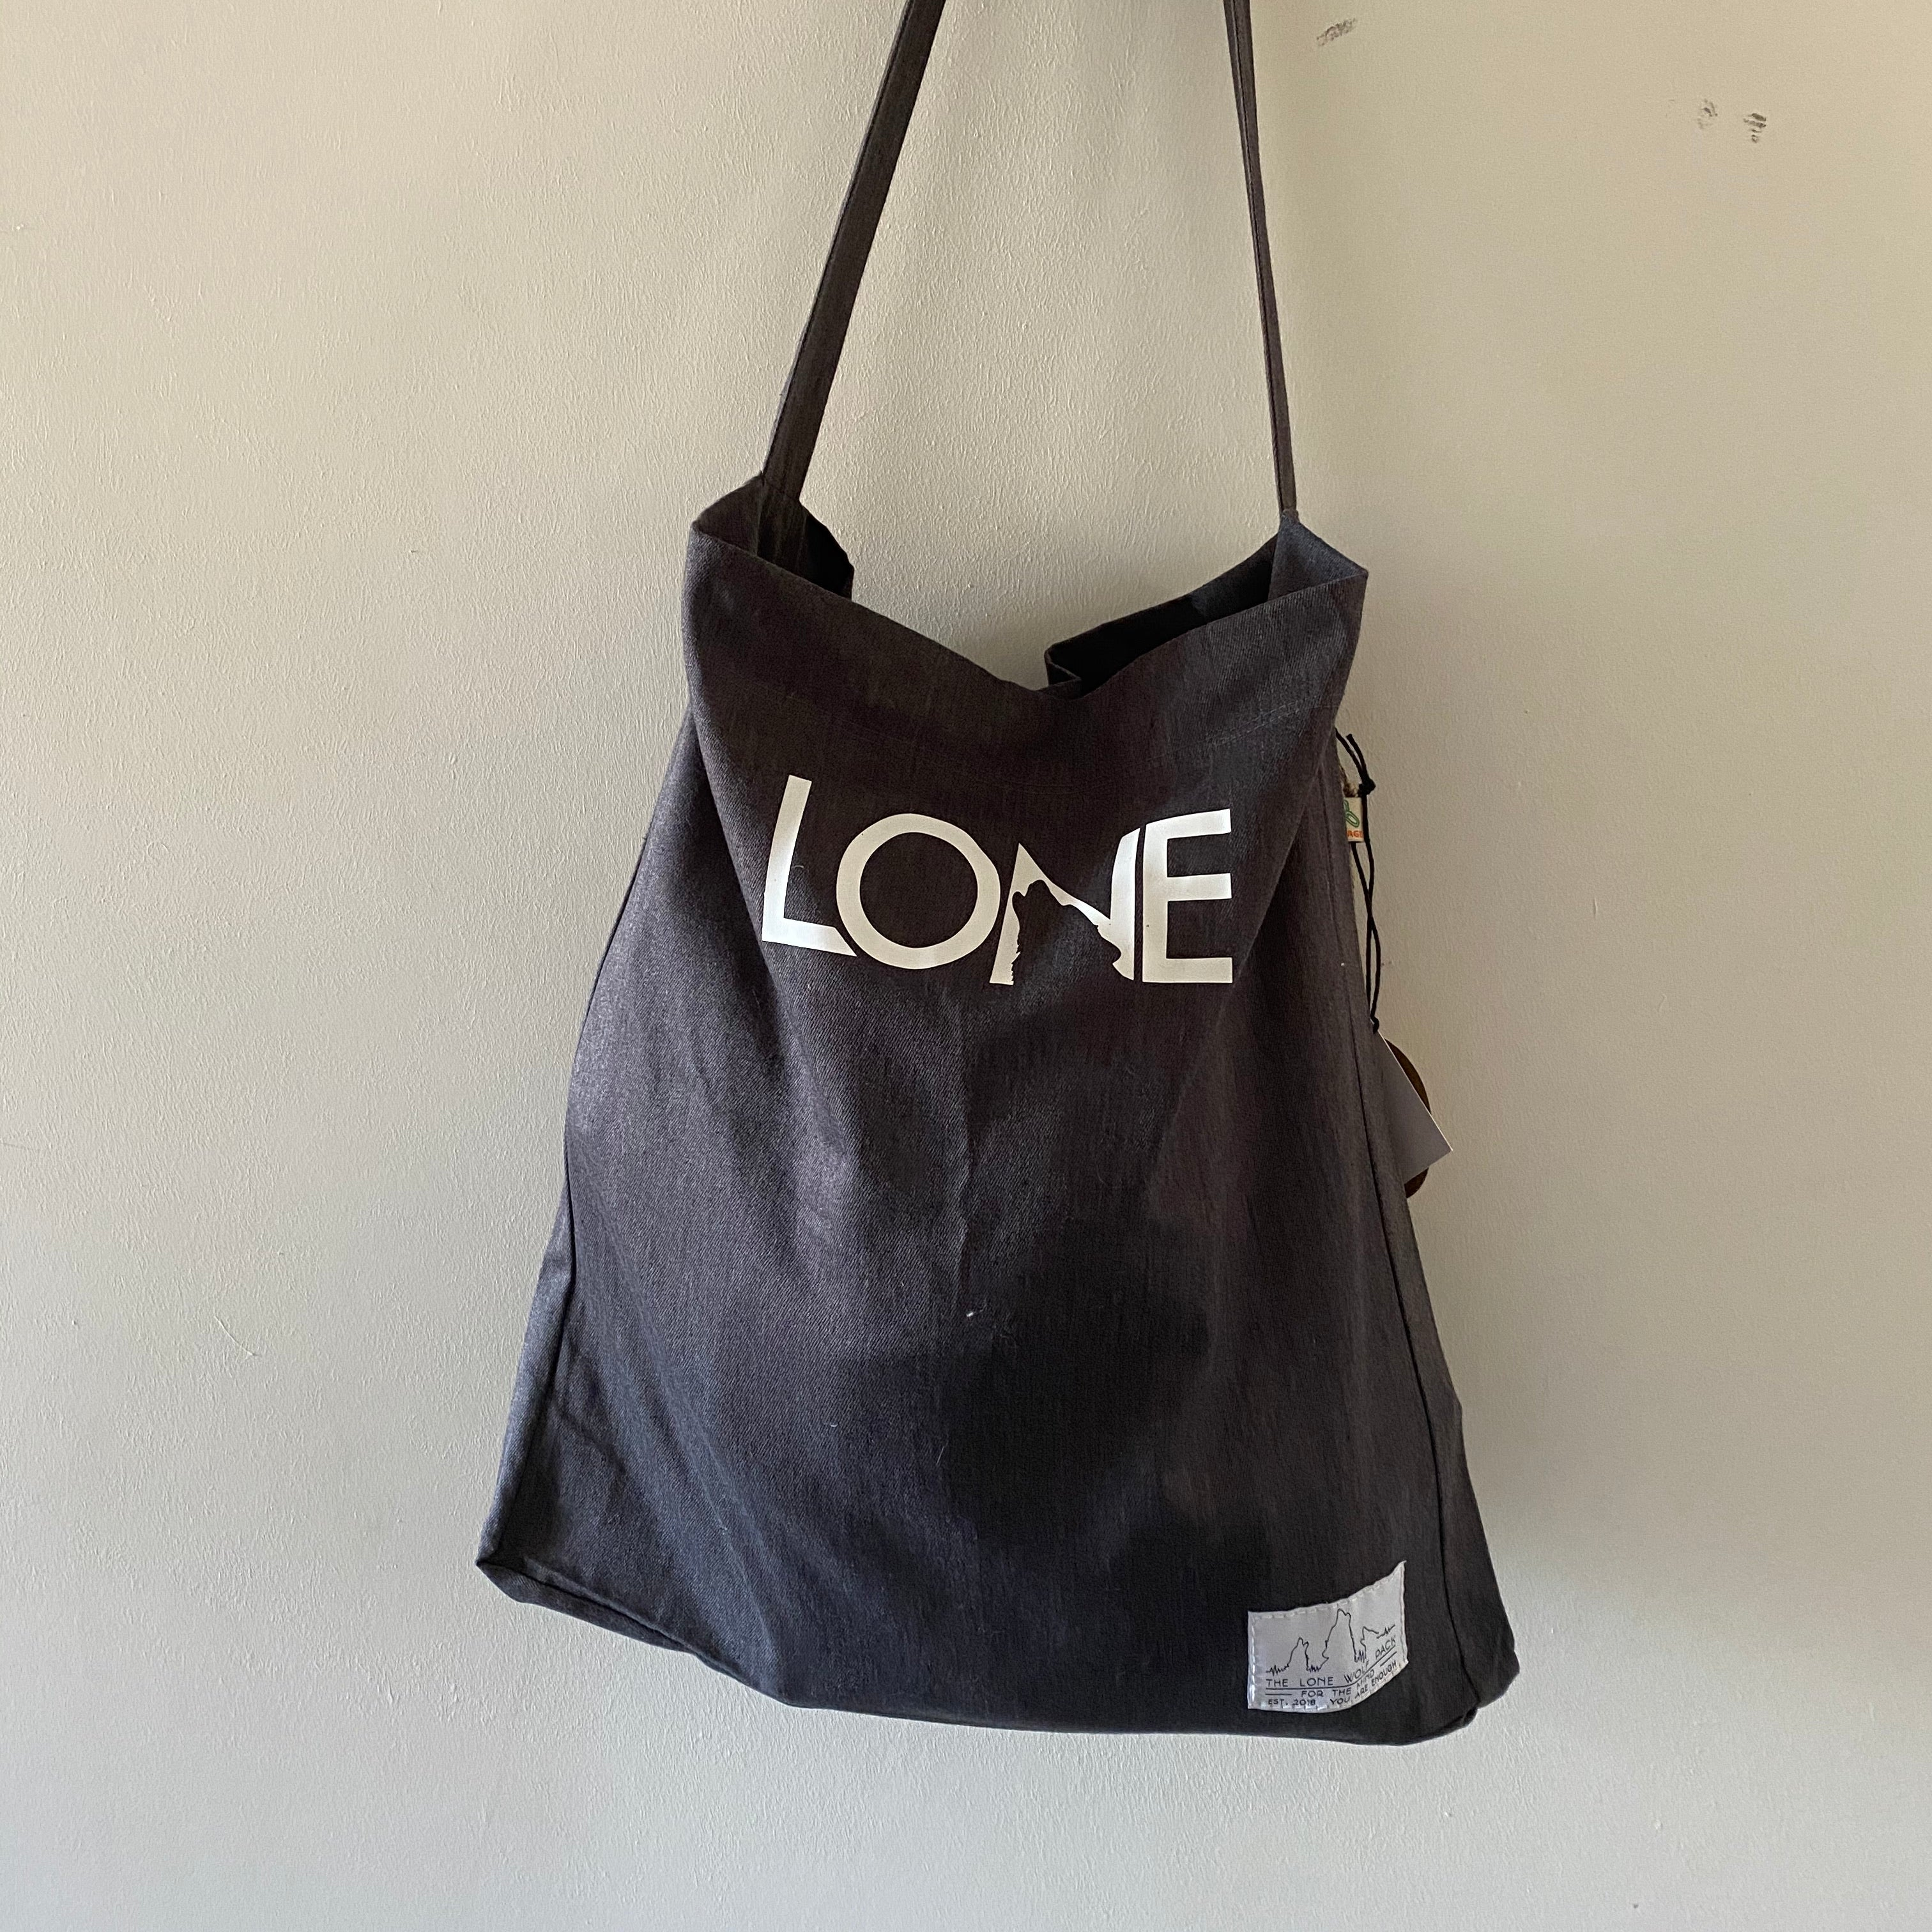 Lone Howl Grey Tote